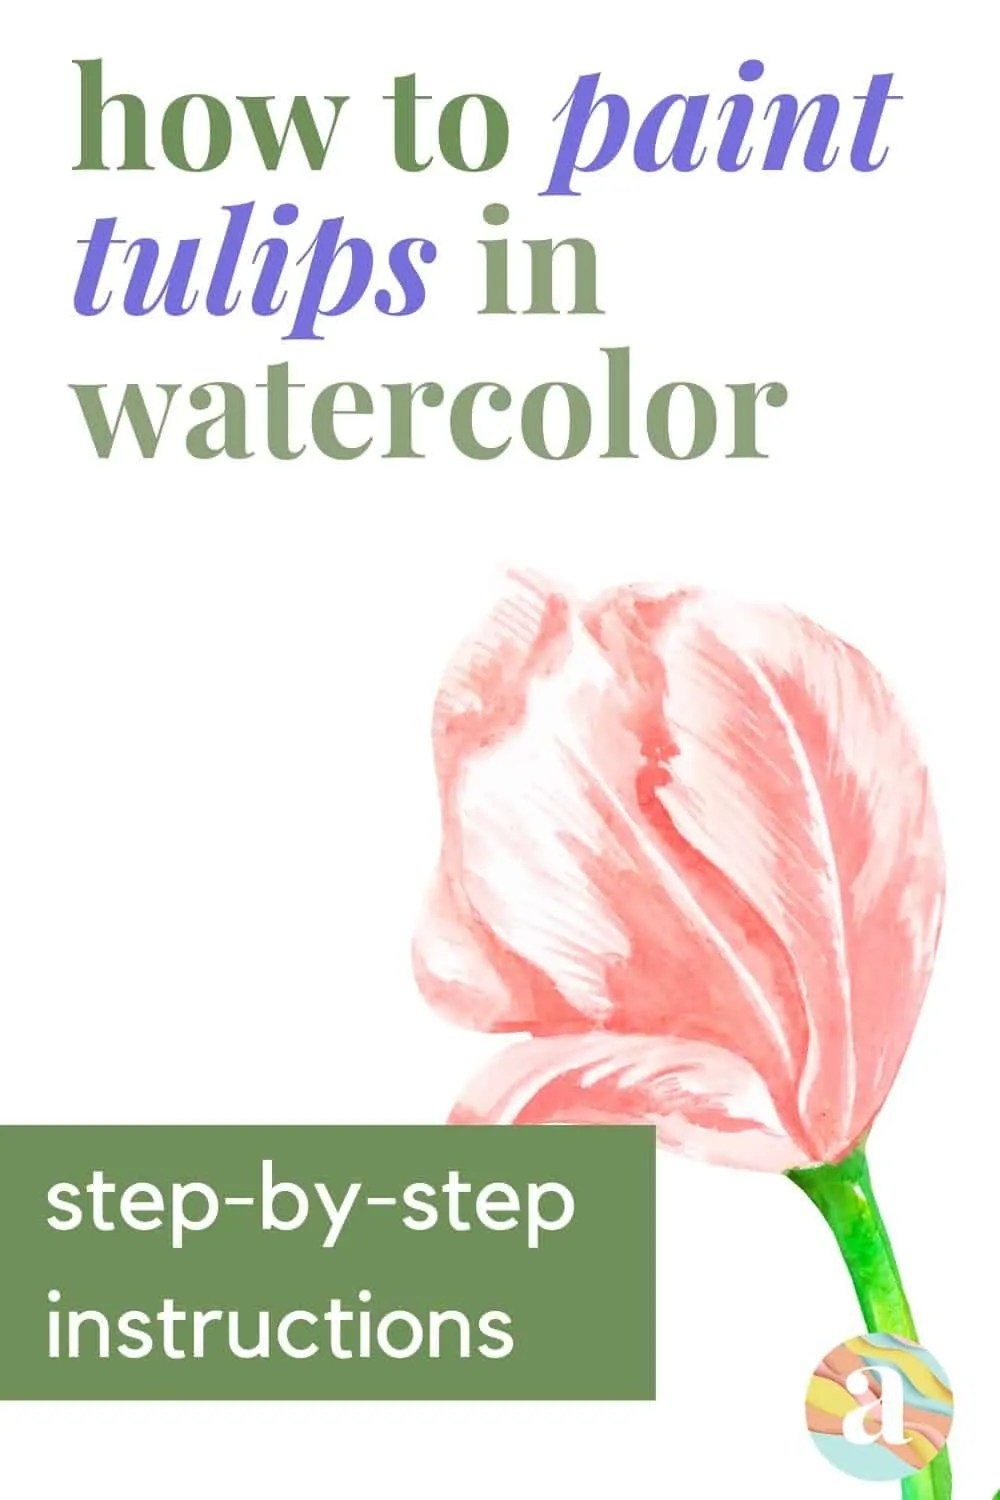 how to paint tulips in watercolor